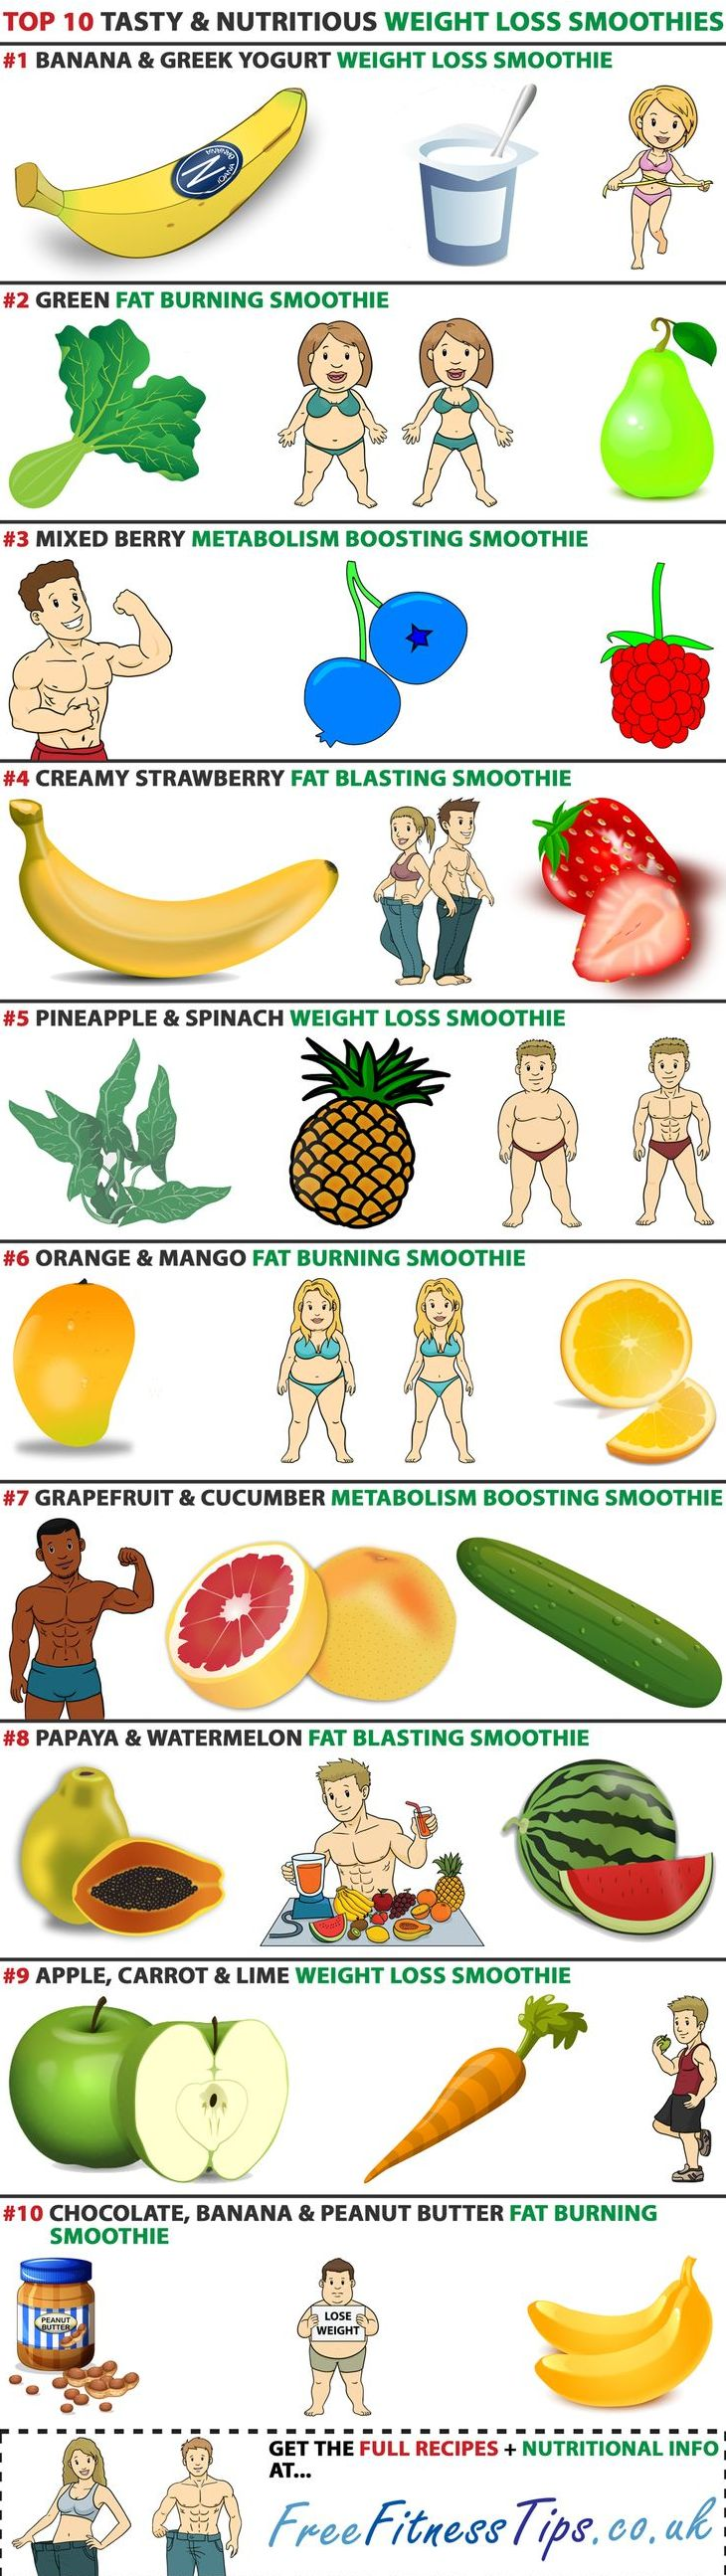 Top 10 Tasty  Nutritious Weight Loss Smoothies Infographic Read more in: http://natureandhealth.net/